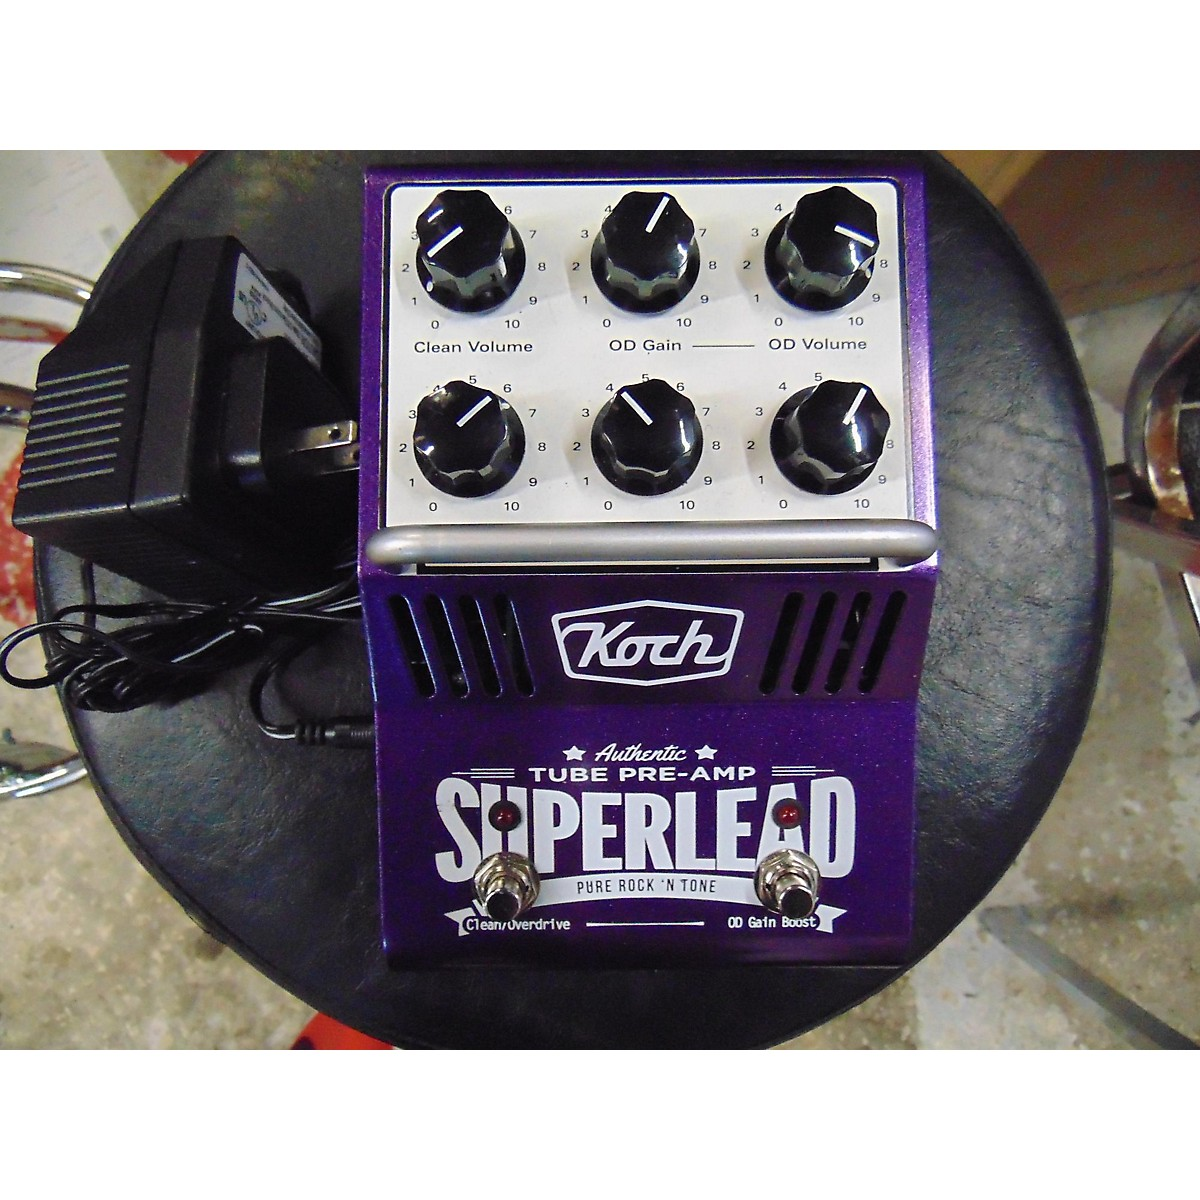 Koch SUPERLEAD Effect Pedal